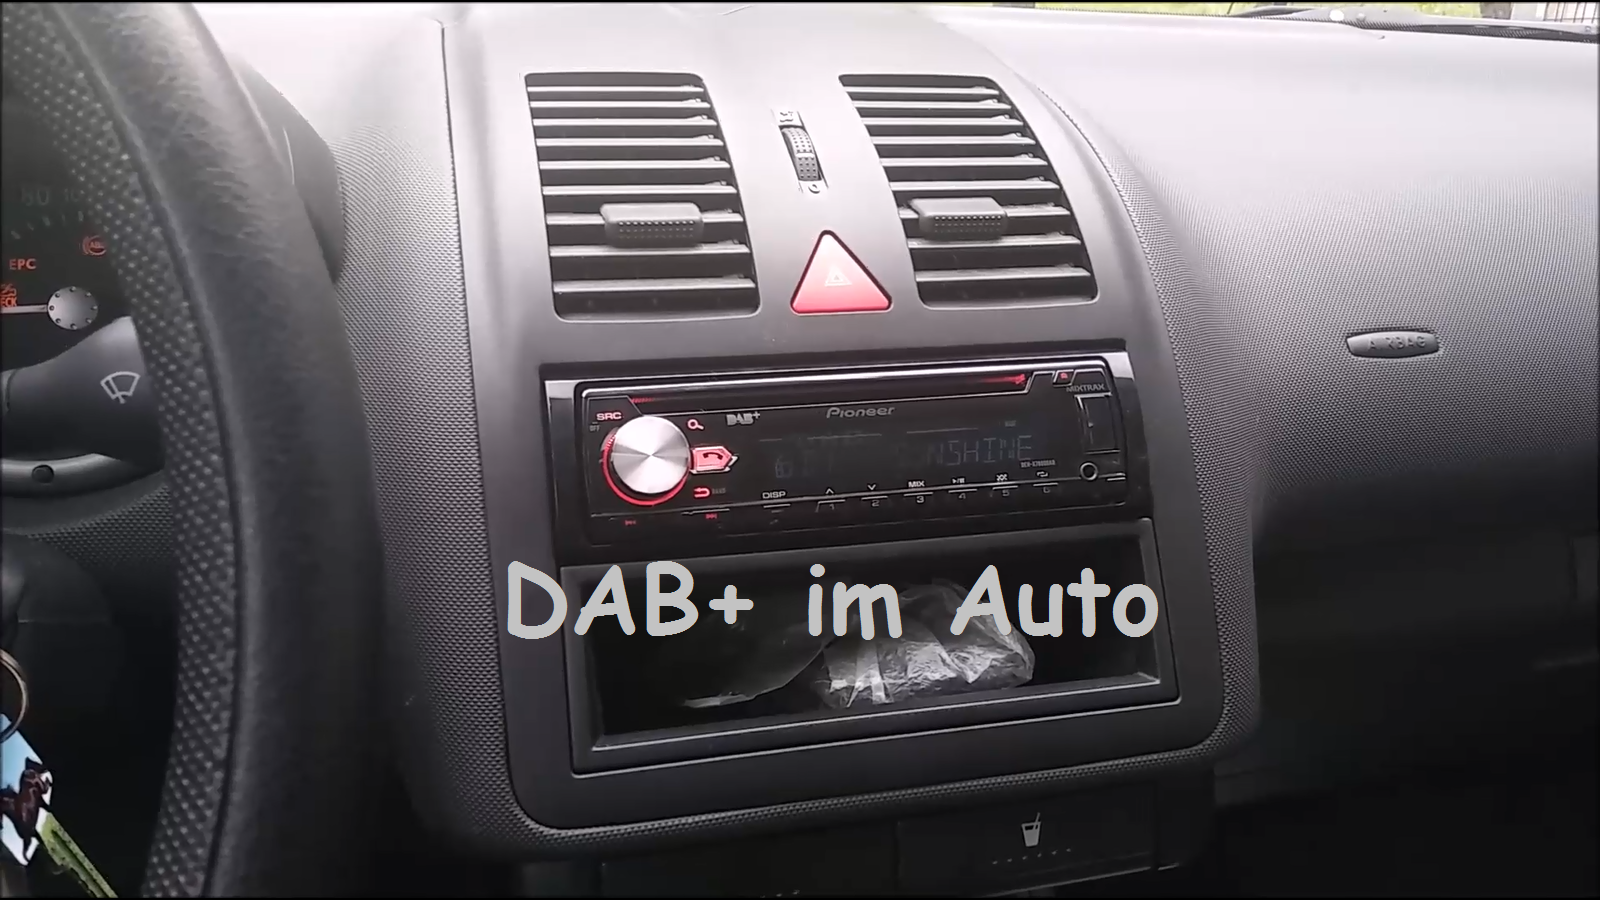 dab im auto nachr sten hobby radio diskutieren. Black Bedroom Furniture Sets. Home Design Ideas